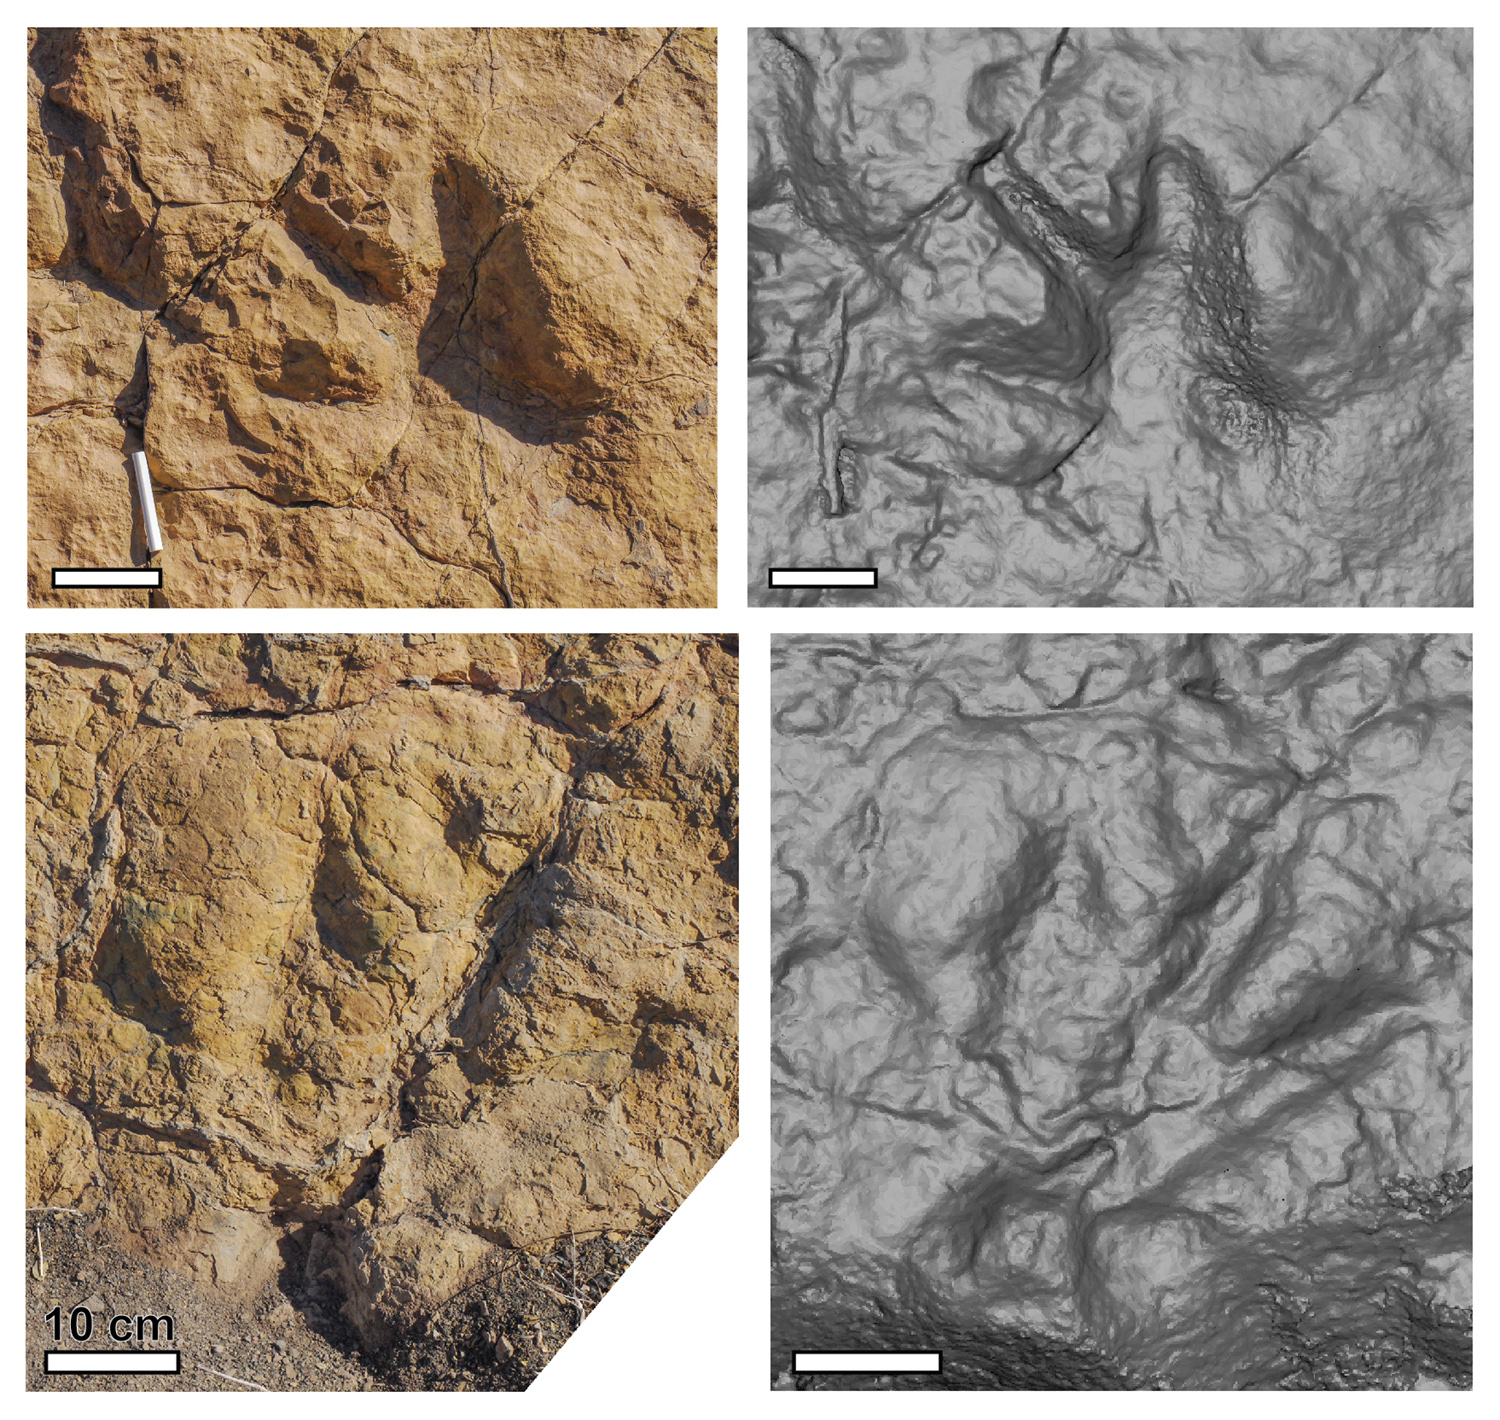 Photos (left) and 3D models (right) of dinosaur-like footprints.